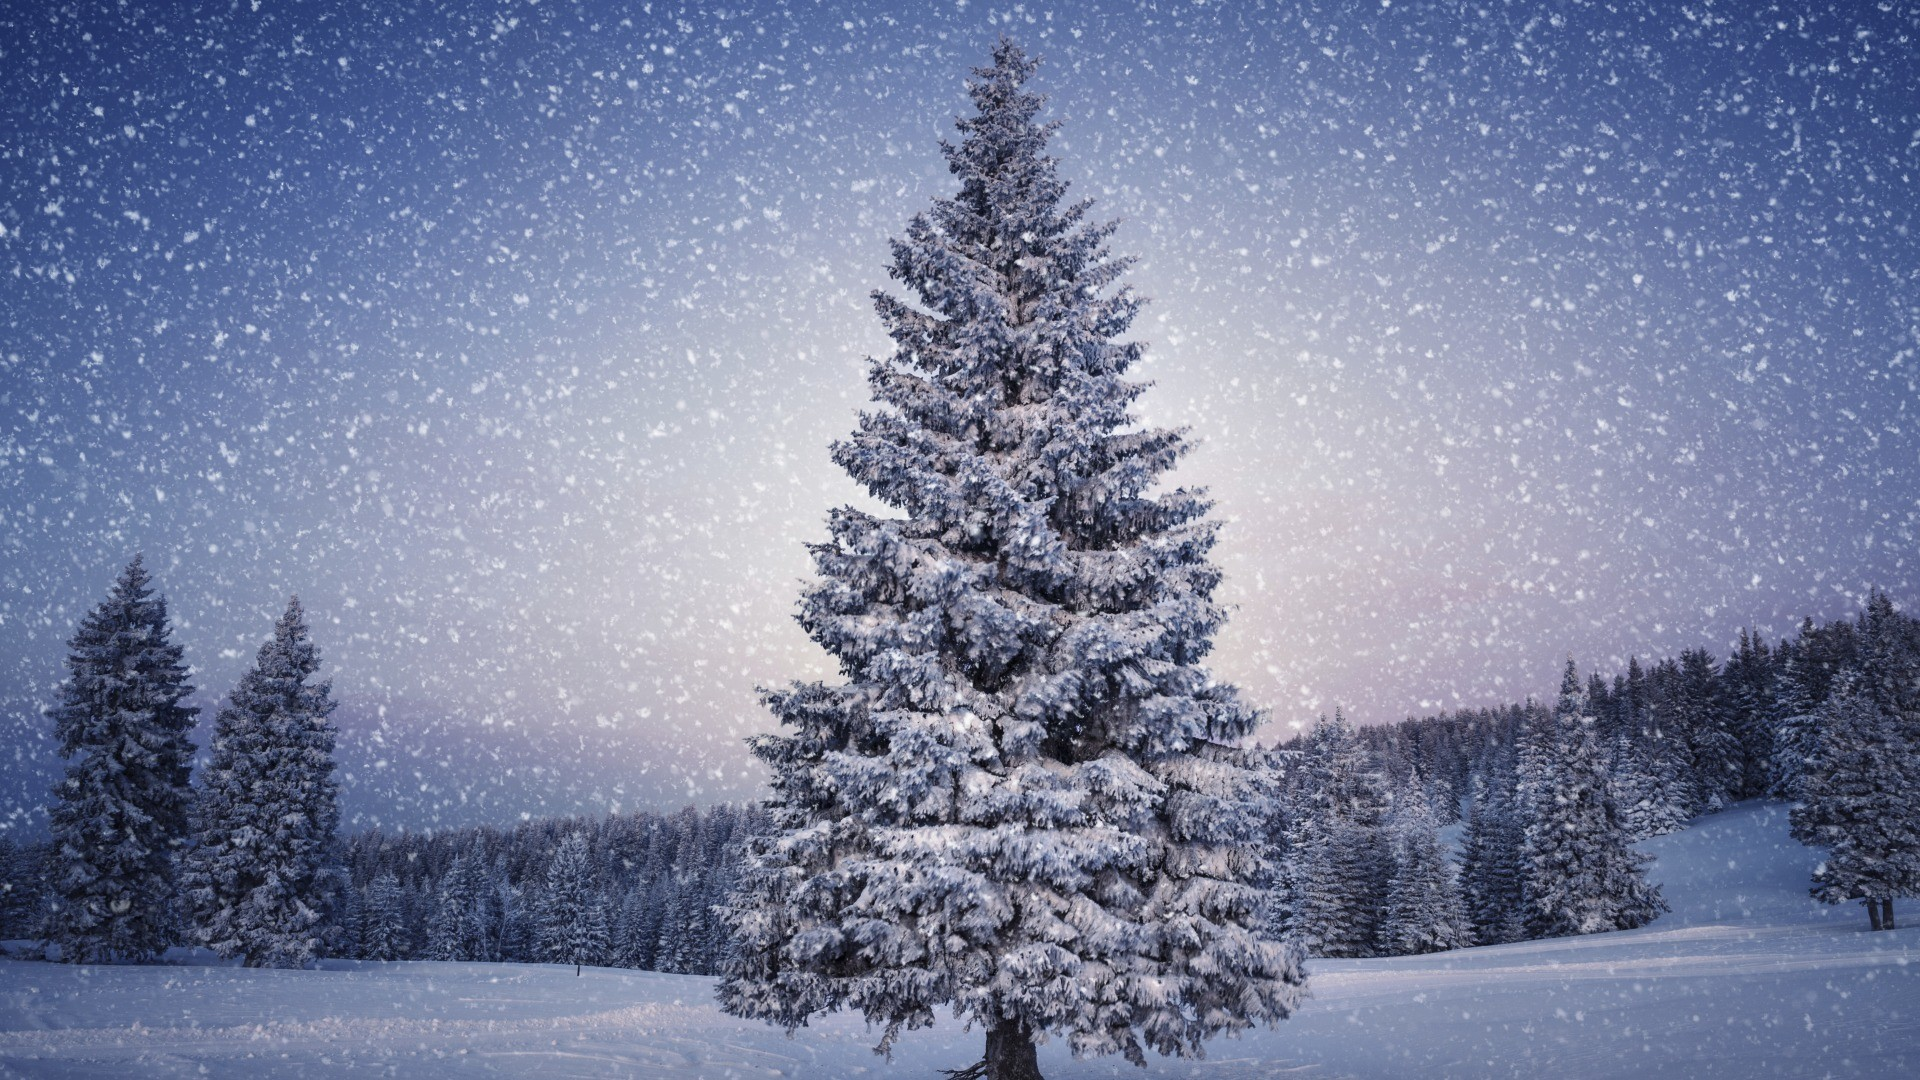 Winter Snow Scenes Wallpaper 1